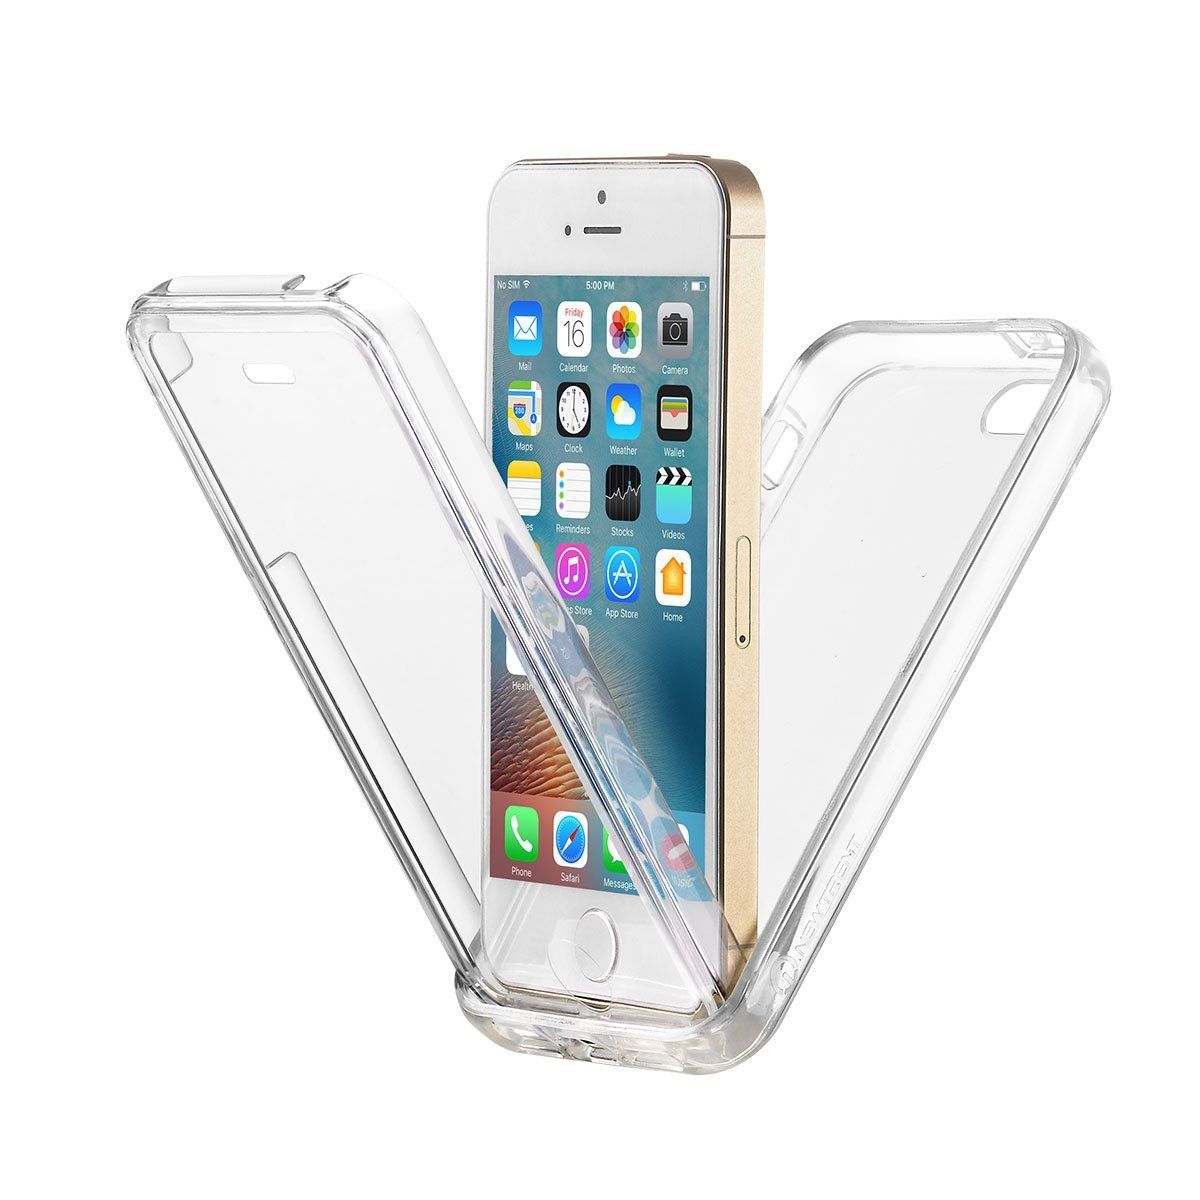 ccff97685 Get Quotations · iPhone SE Case, iPhone 5s Case, iPhone 5 Case, New Trent  Alixo Rugged